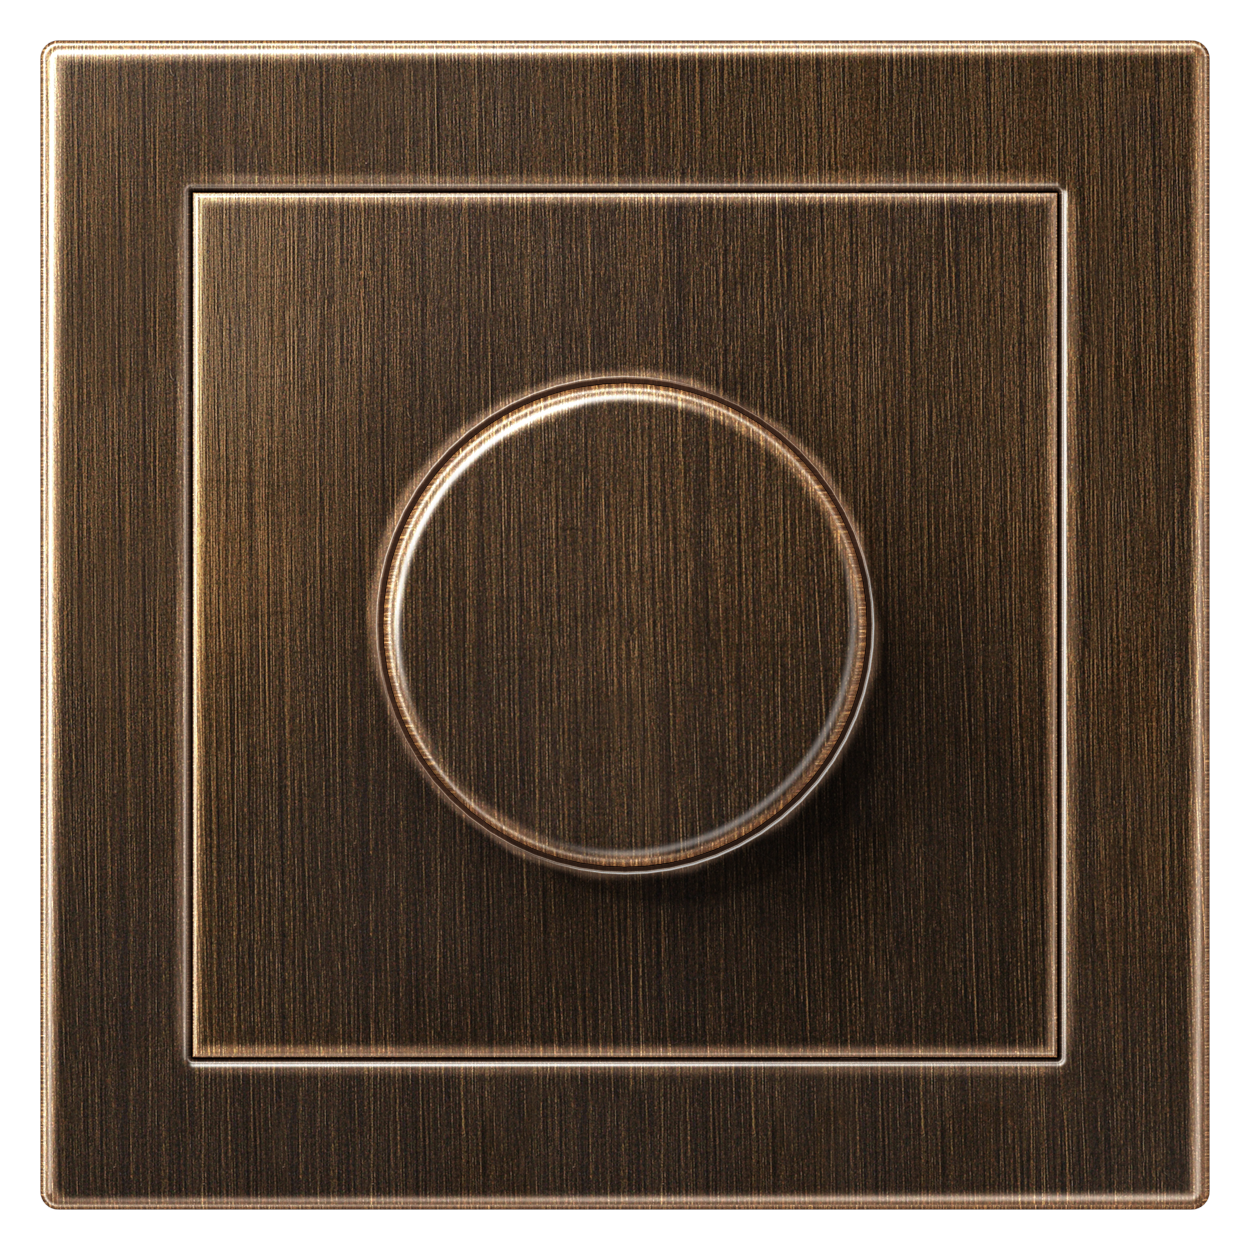 JUNG_LS_Design_antique_brass_dimmer